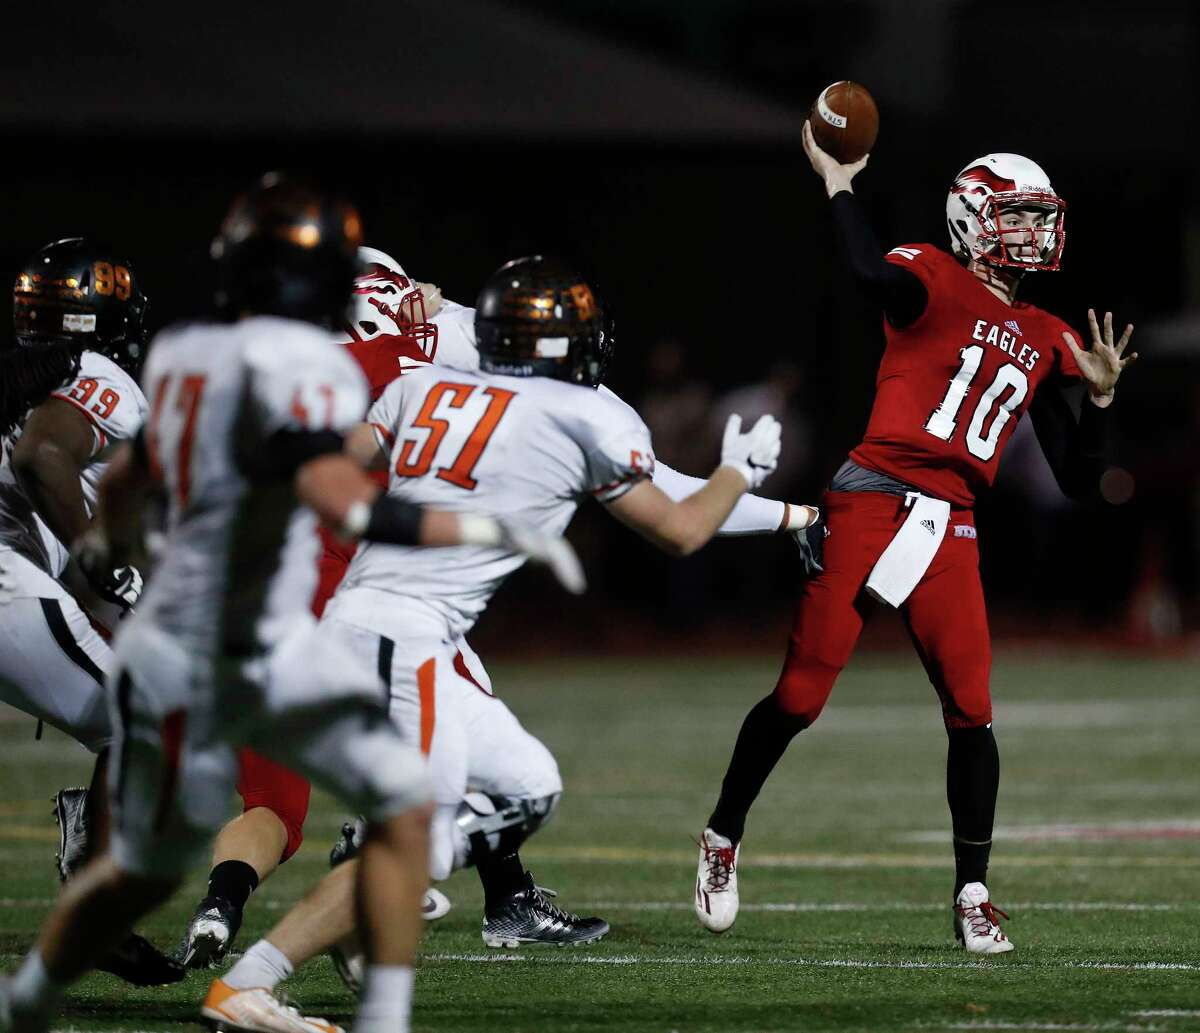 St. Thomas' quarterback Peyton Matocha (10) throws the ball during the first half of a high school football game between St. Pius X and St. Thomas High Schools at St. Thomas, Friday,Nov. 4, 2016 in Houston. ( Karen Warren / Houston Chronicle )